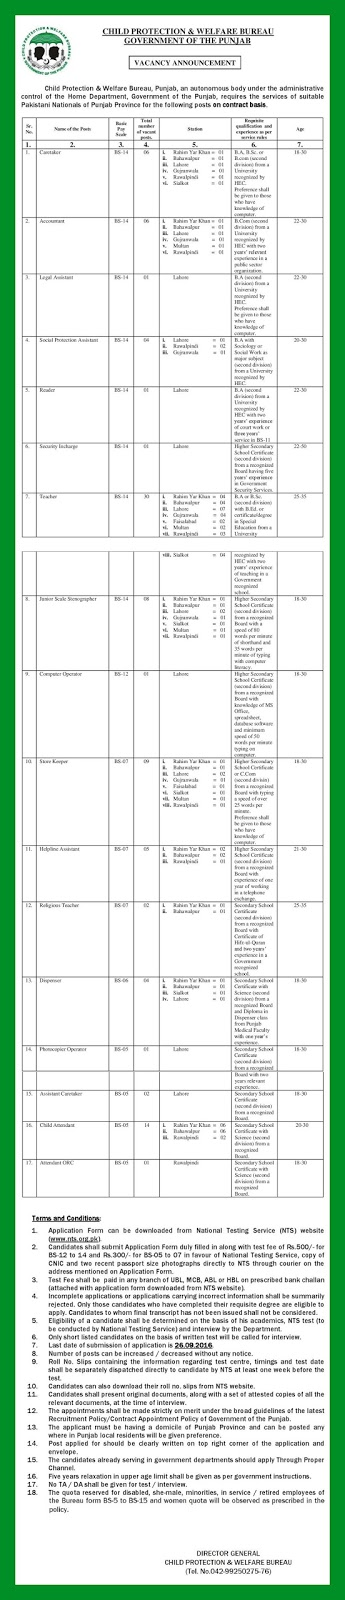 Jobs in Child Protection Bureau 2016